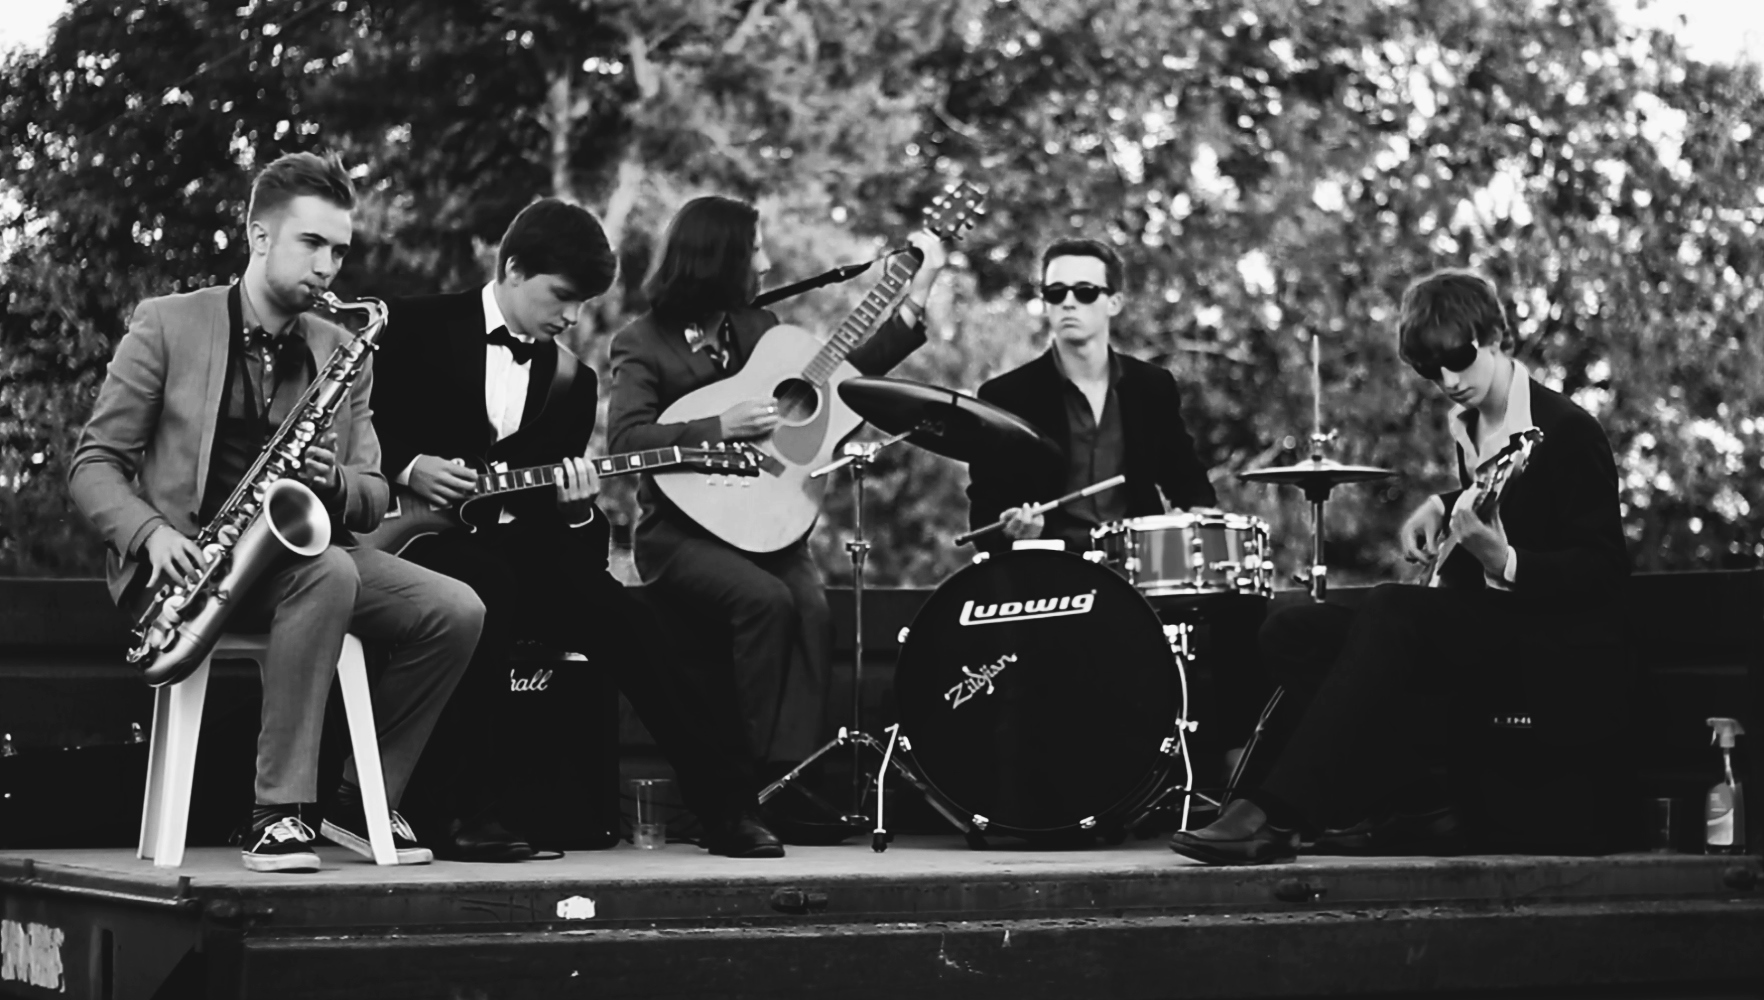 Performing with my band - July 2013